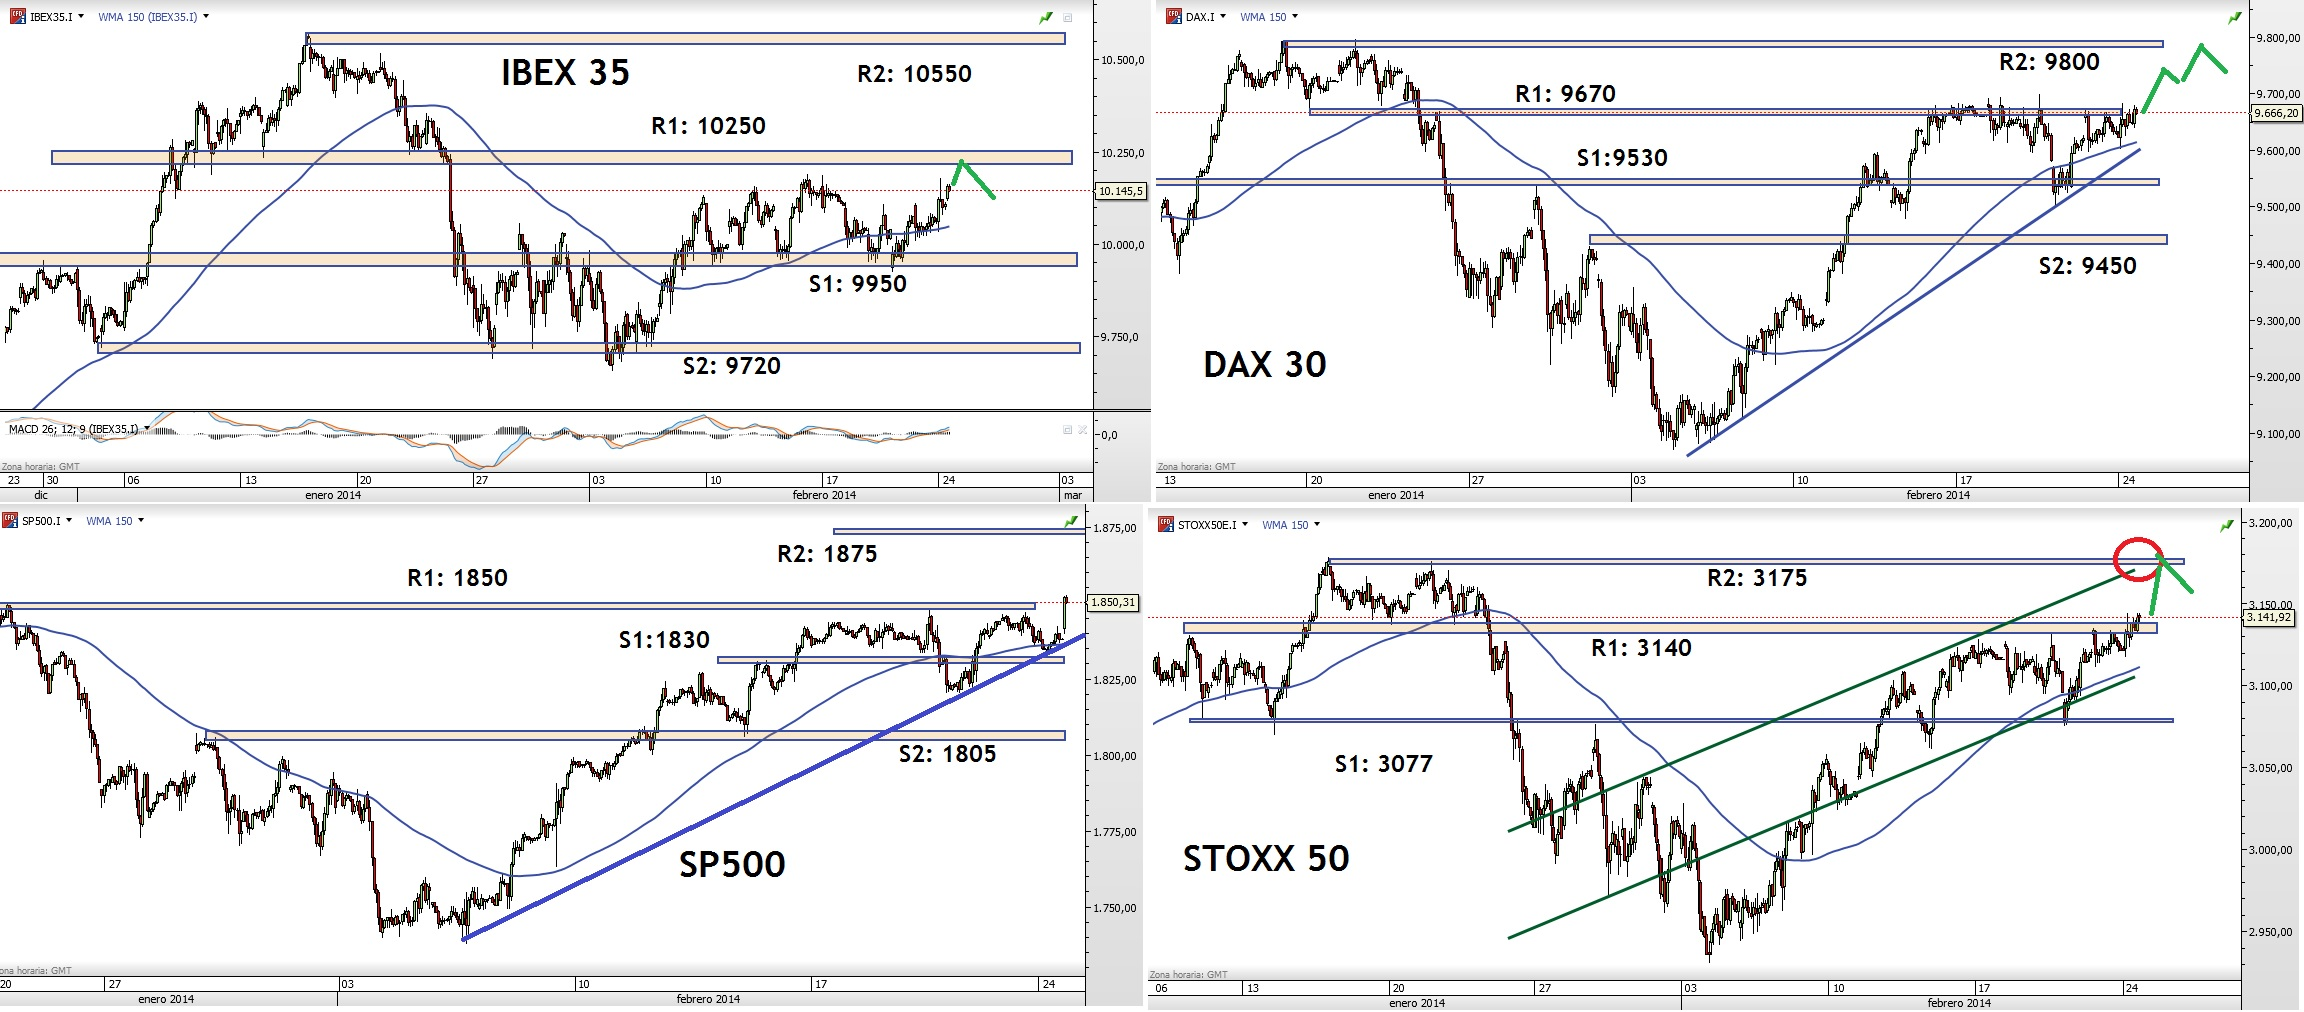 NIVELES INDICES